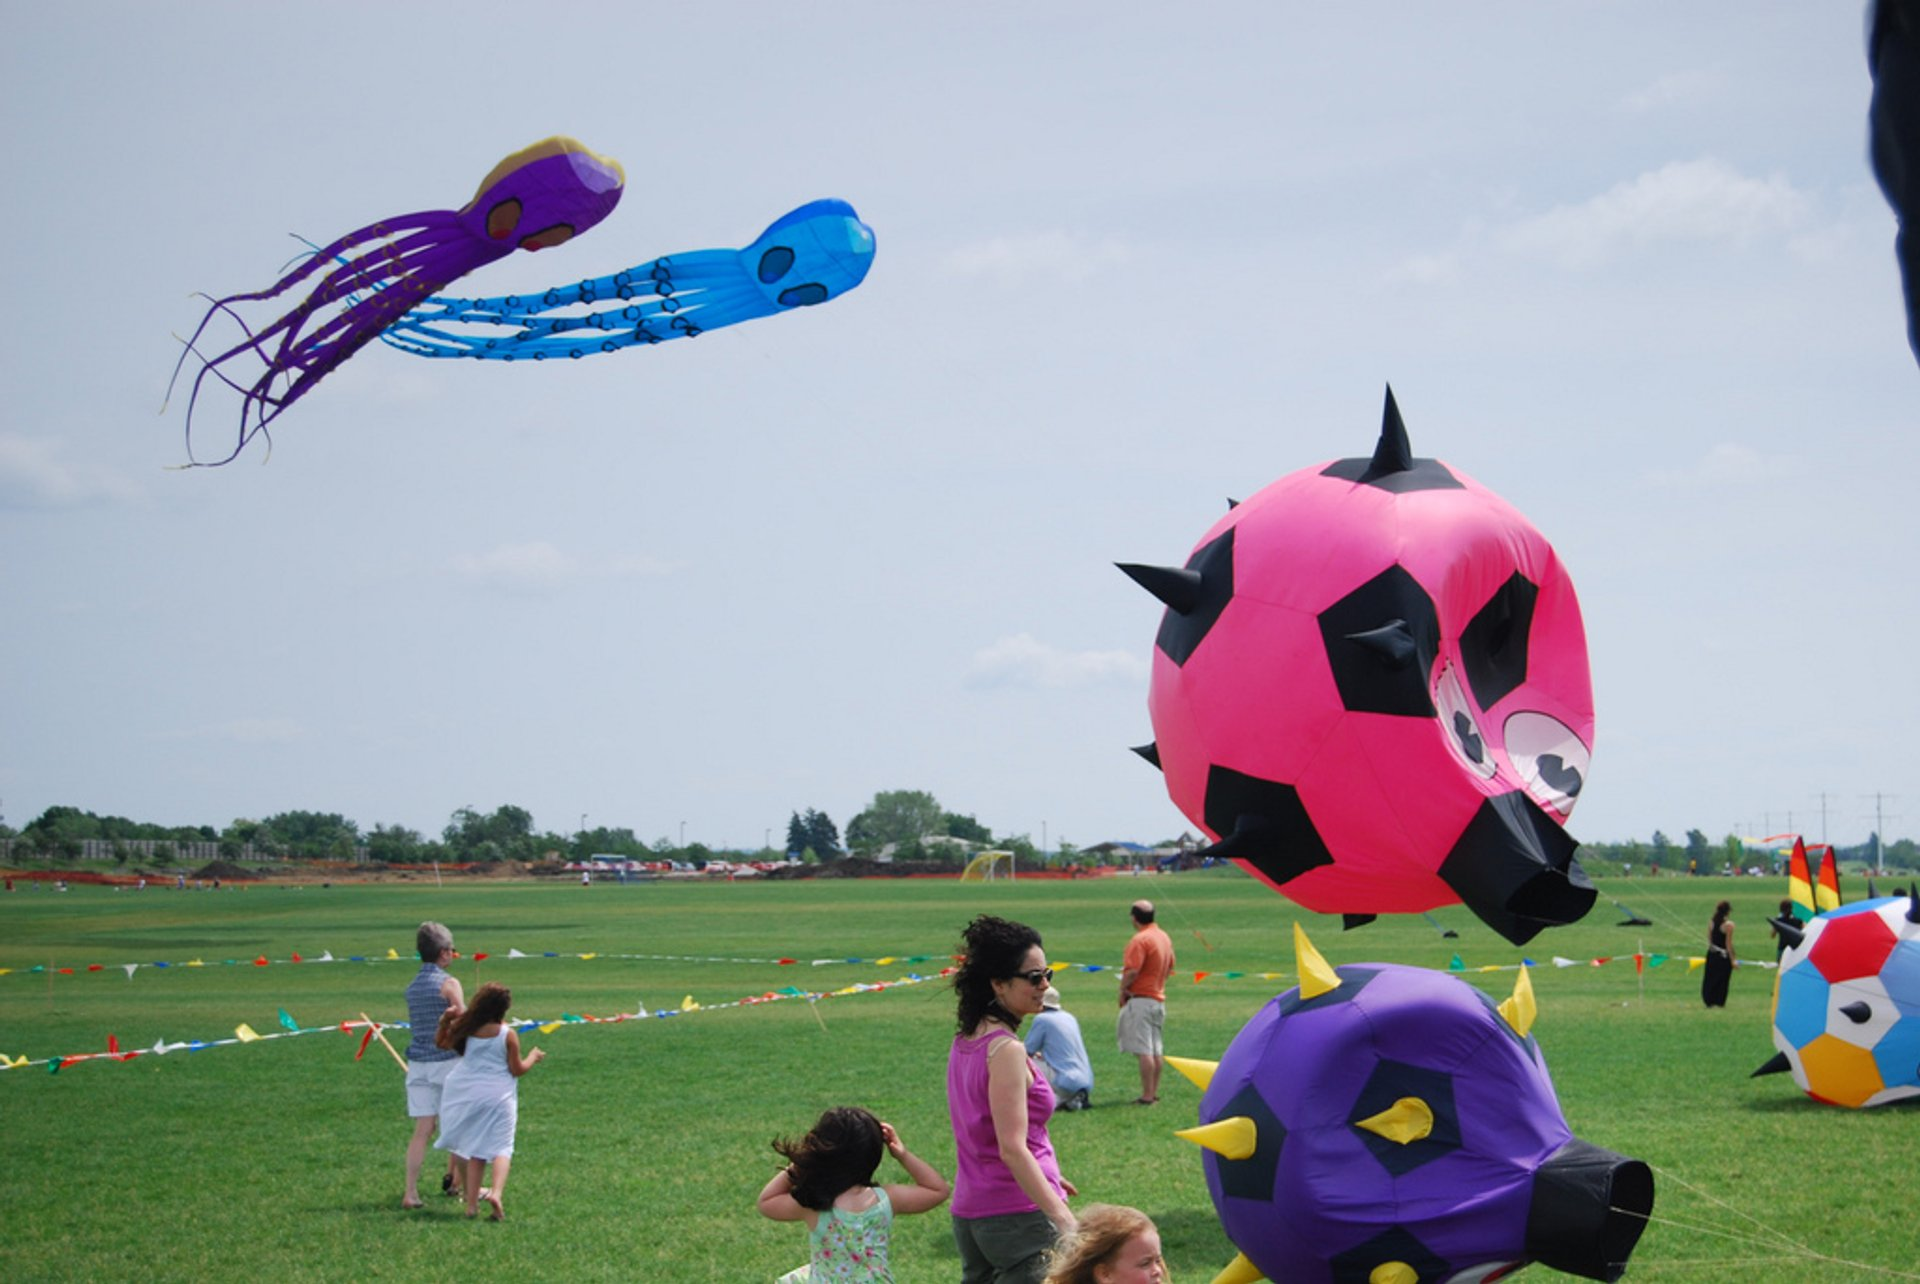 Kids and Kites Festival in Chicago 2019 - Best Time